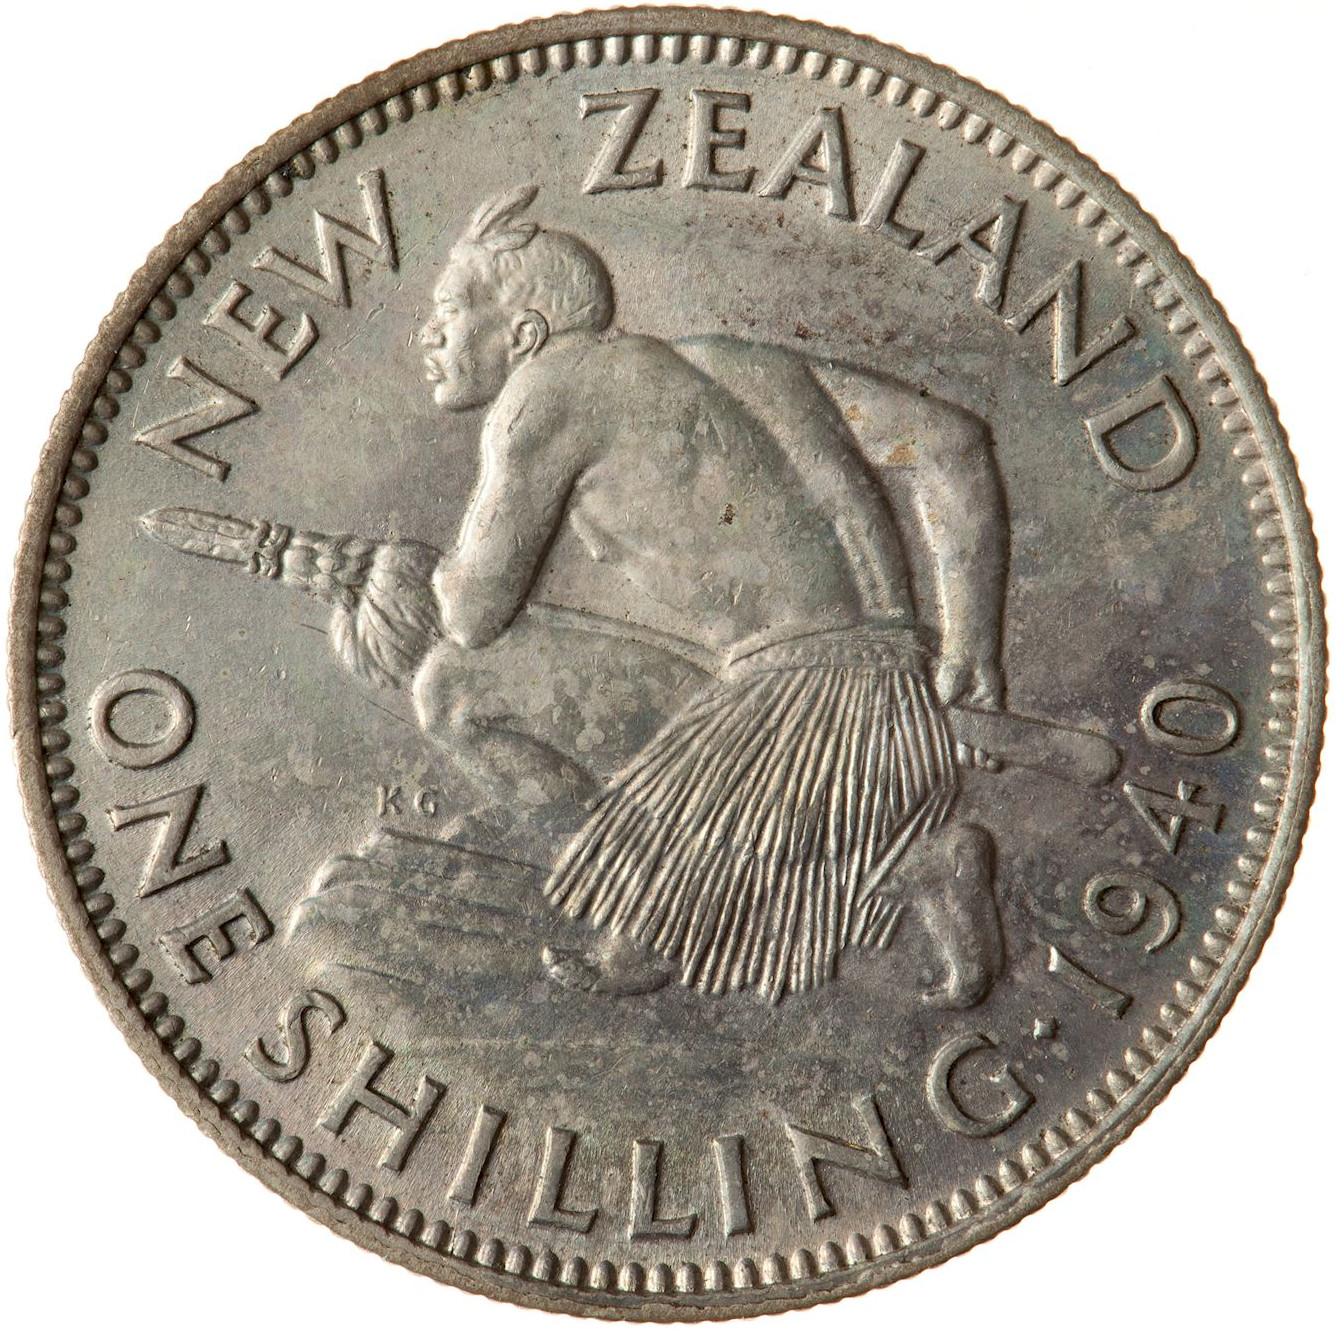 Shilling 1940: Photo Coin - 1 Shilling, New Zealand, 1940